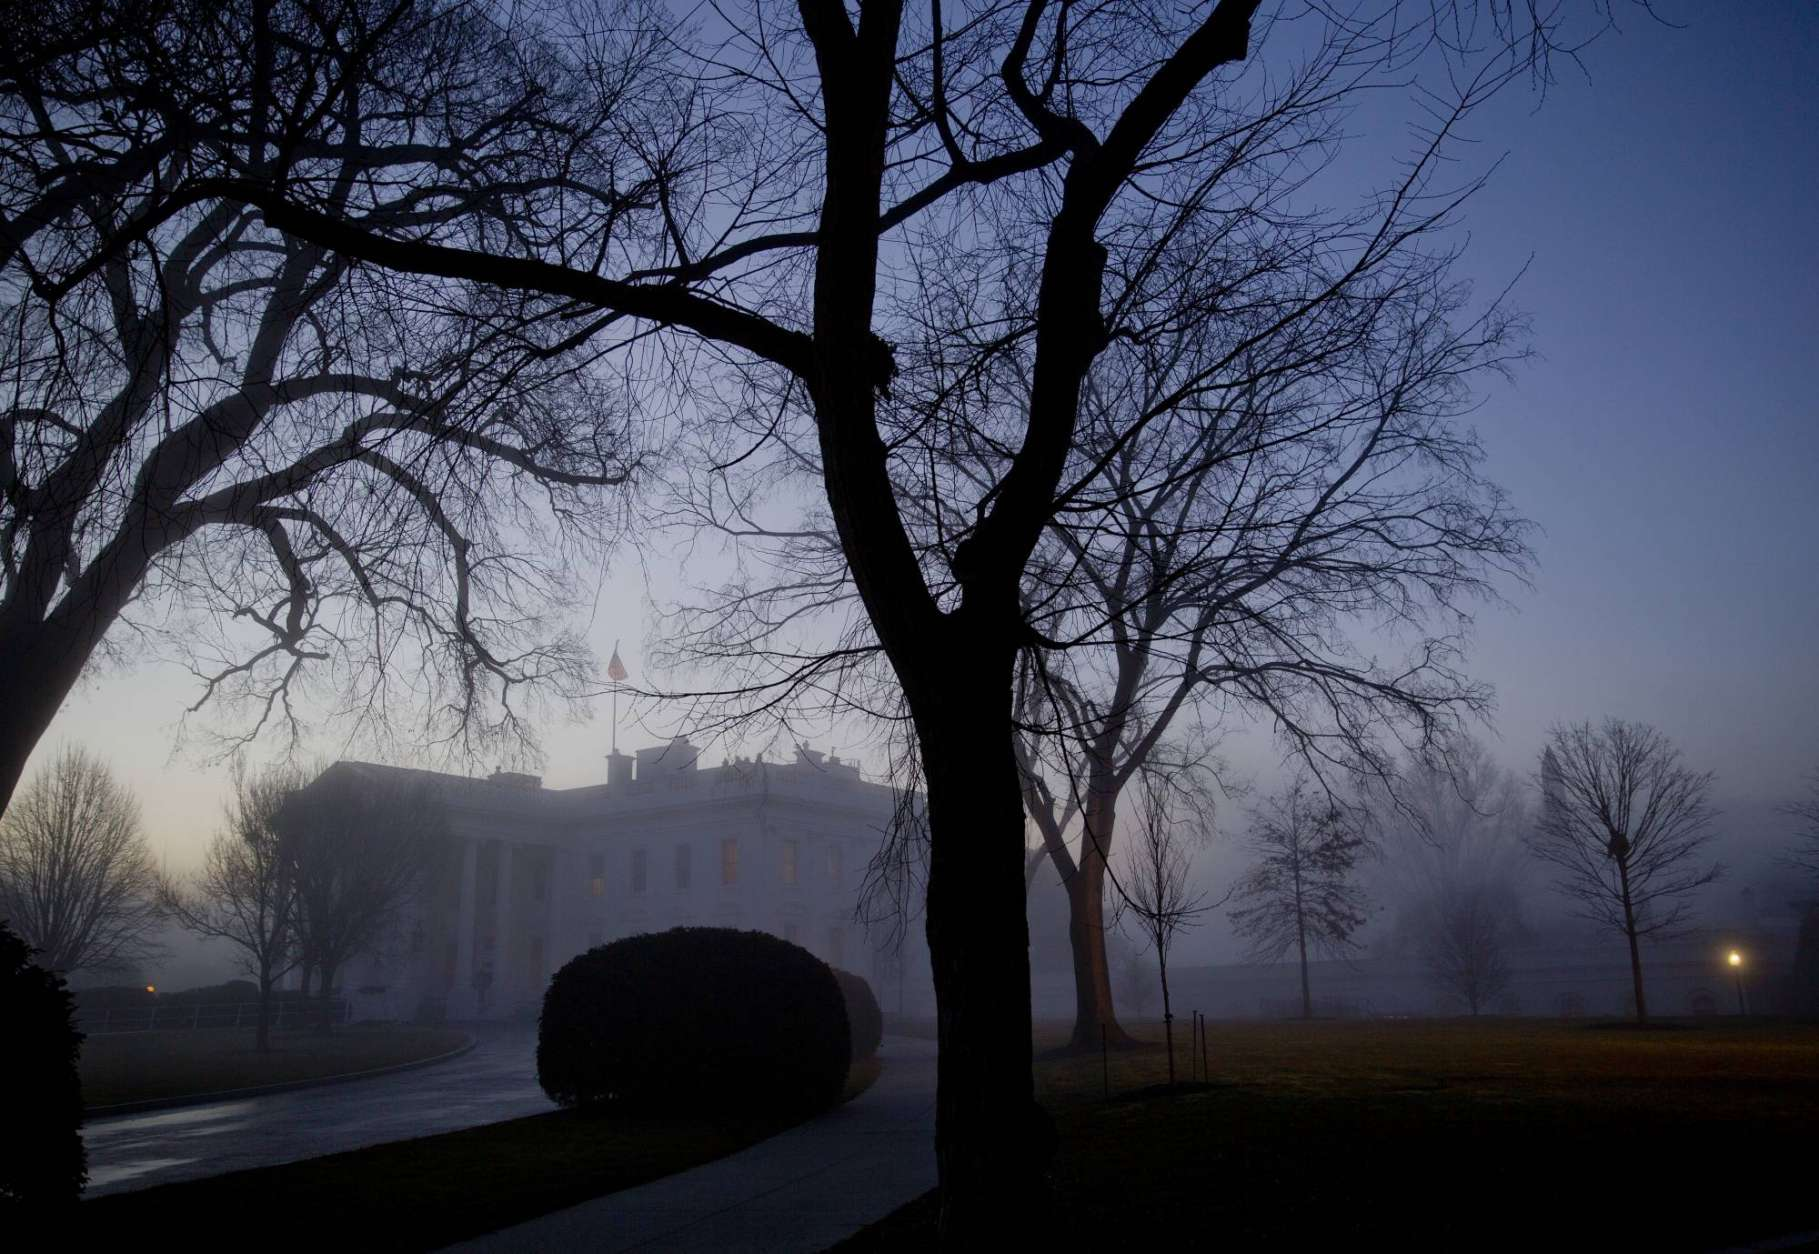 Morning fog is seen at the White House in Washington, Wednesday, Jan. 18, 2017. President Barack Obama is in the final days of his presidency with an 11th hour push to tie up loose ends and put the finishing touches on his legacy before handing the reins to President-elect Donald Trump. (AP Photo/Pablo Martinez Monsivais)